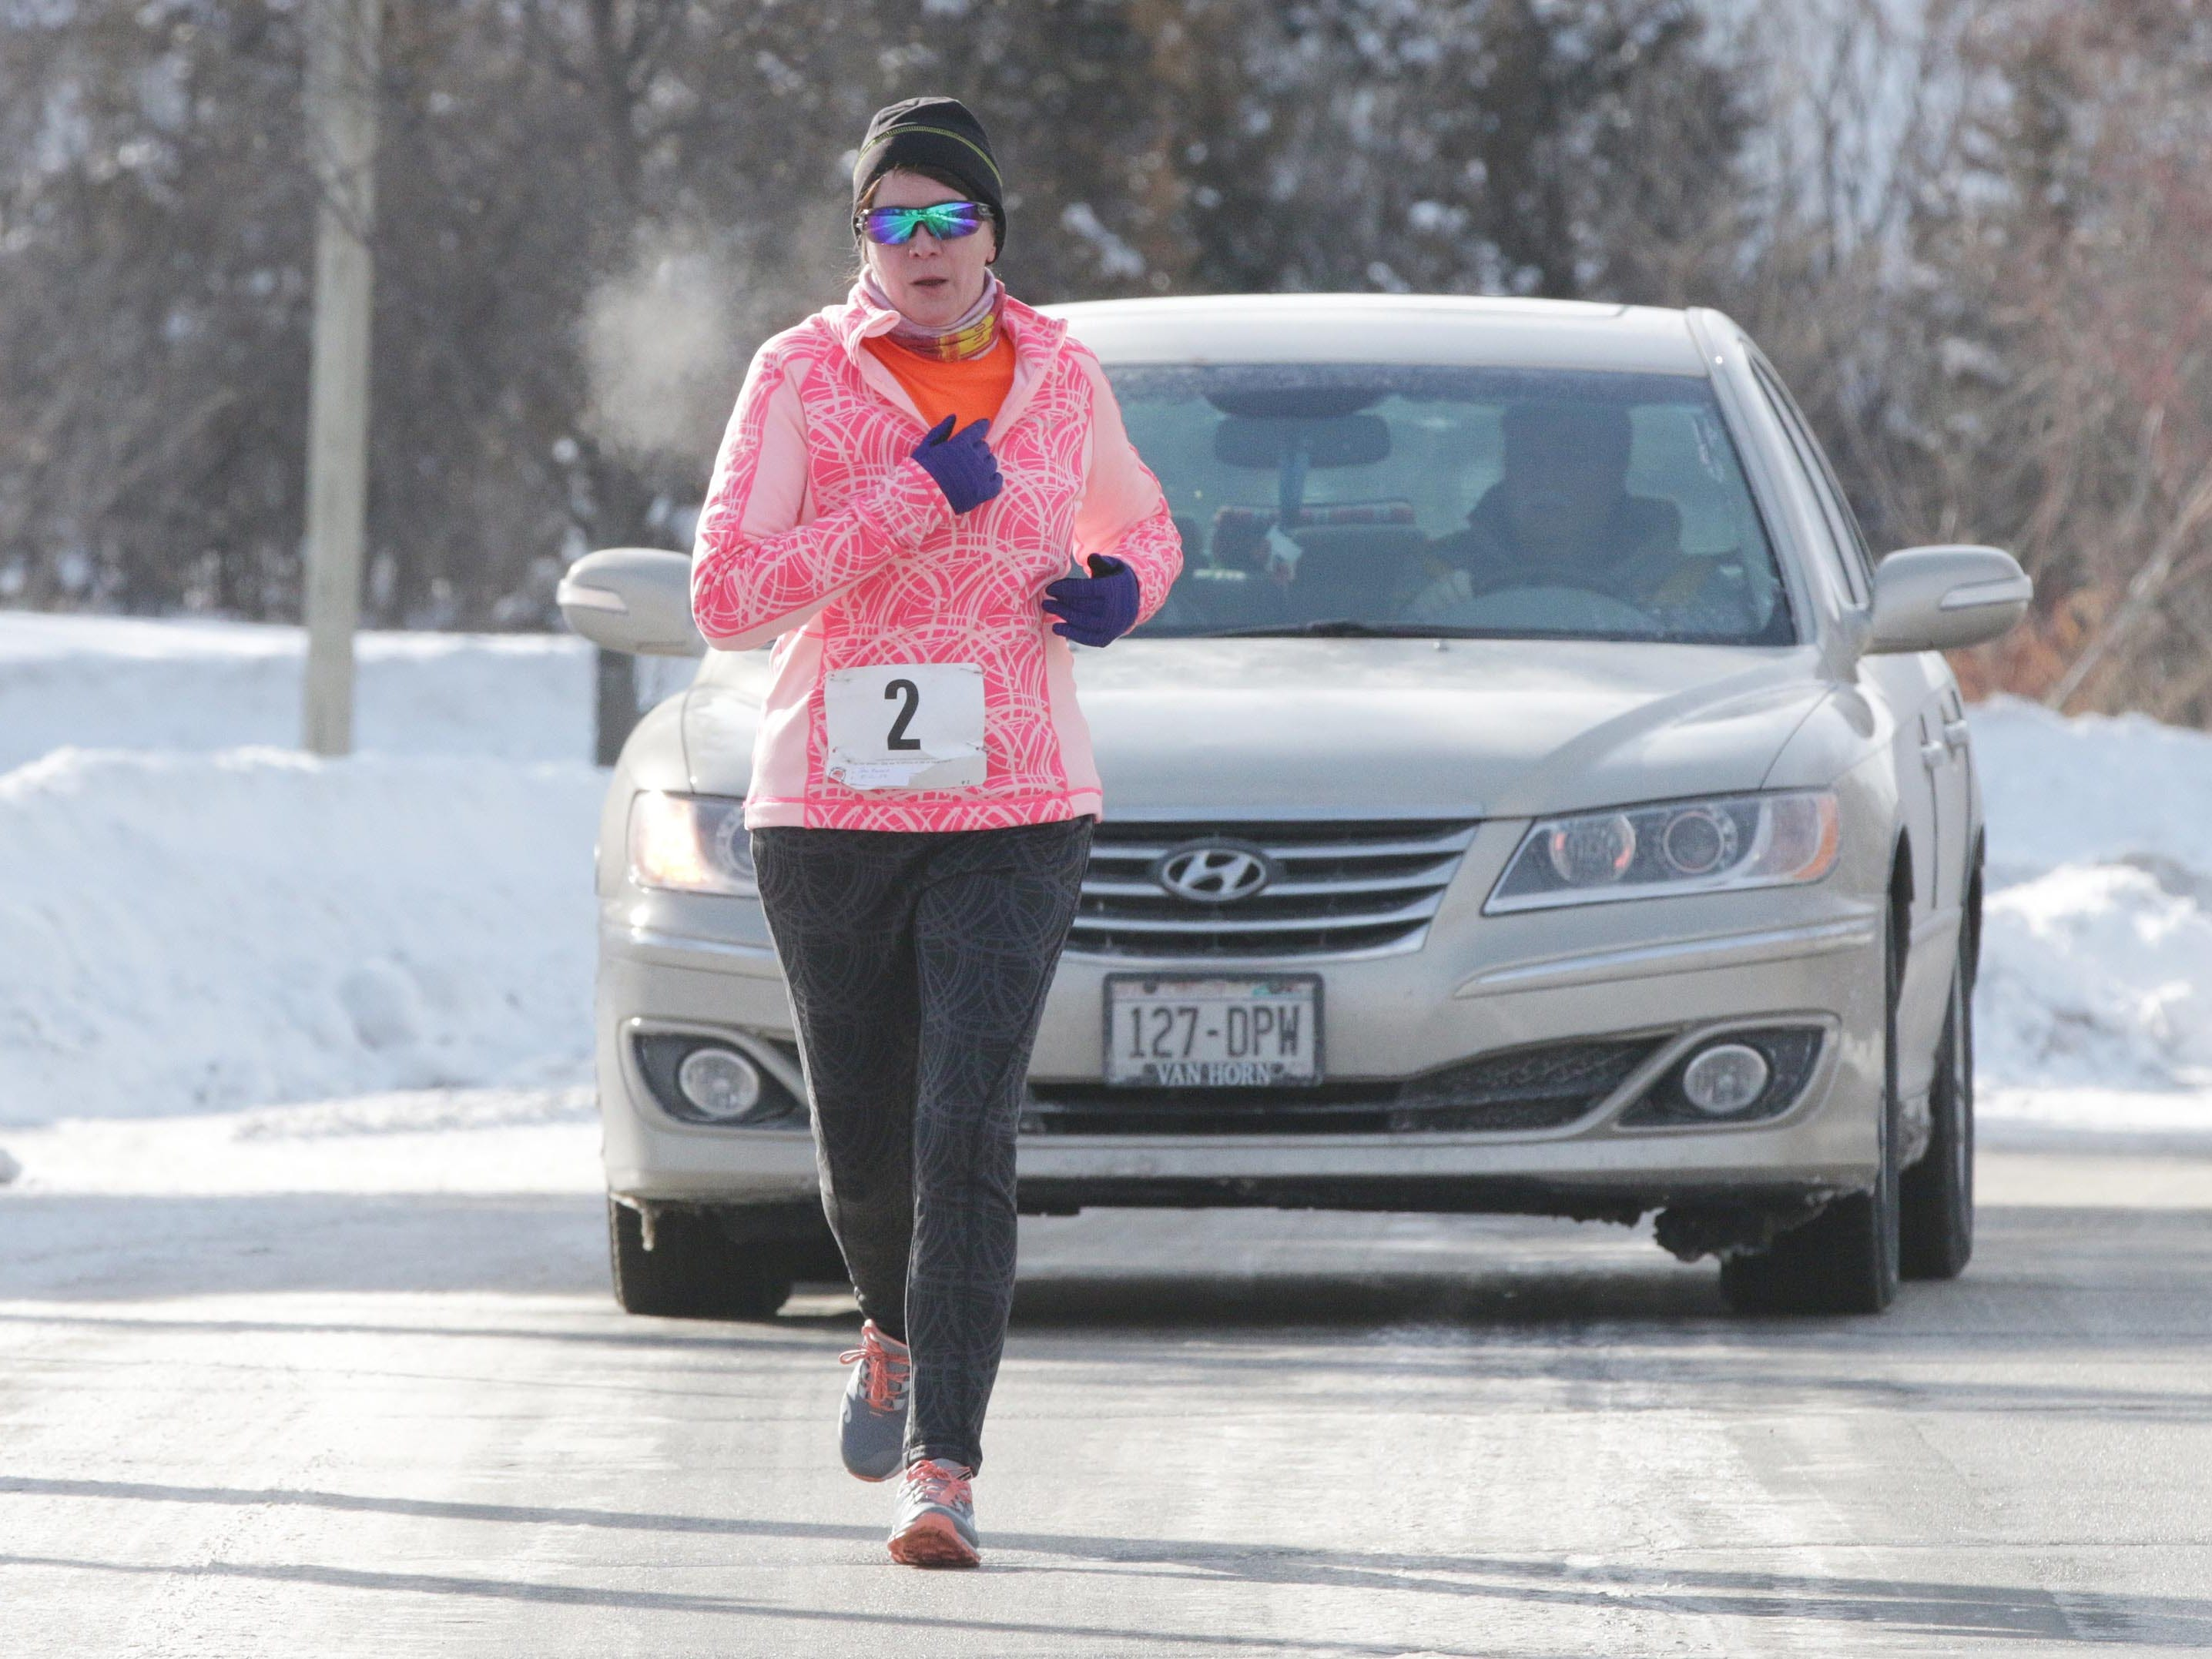 Jan Bennin (2) of New Holstein, Wis., runs the 2-mile Schneelauf Run, Saturday, January 26, 2019, in Elkhart Lake, Wis. The event is part of Schnee Days in Elkhart Lake. Bennin's time was 20:40 for the event.